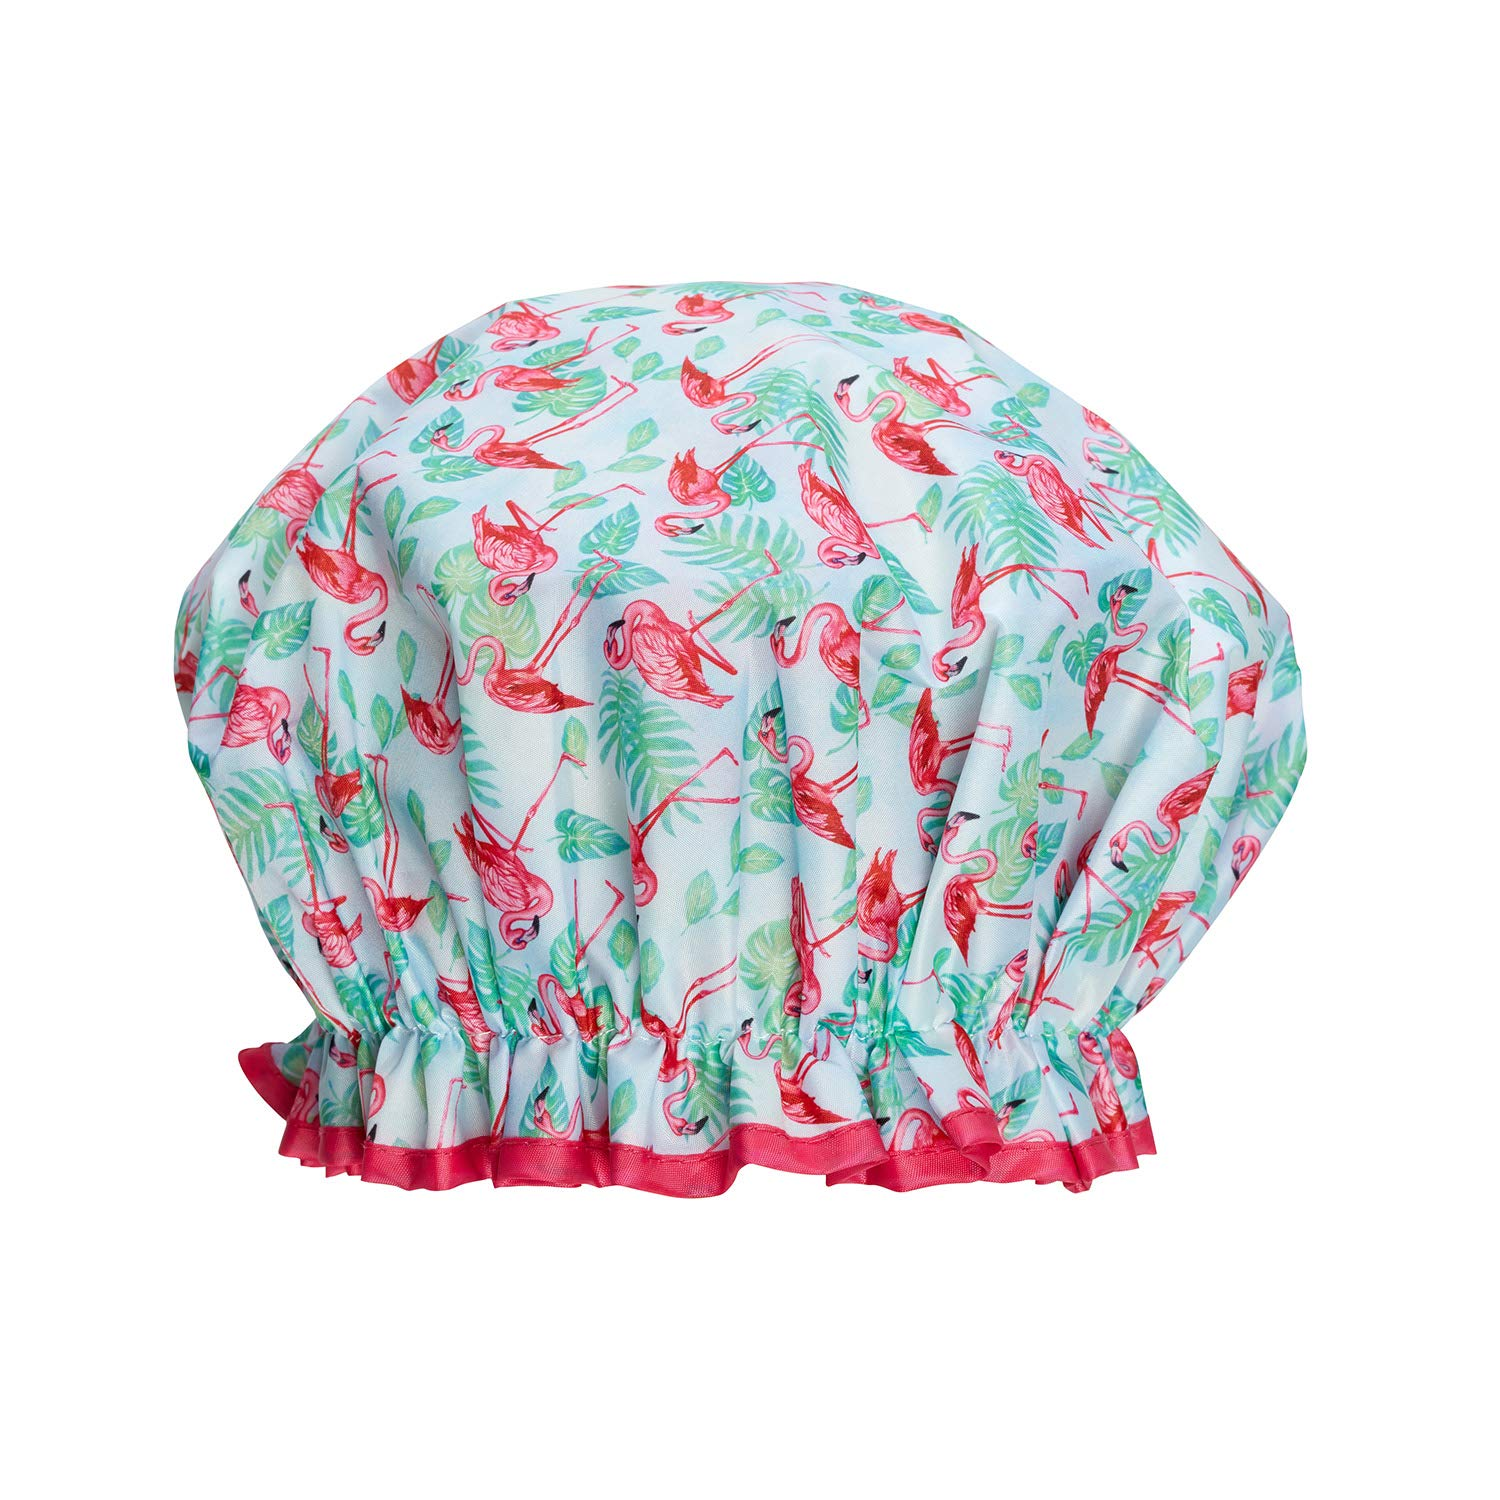 Bodylife Flamenco Flamingo Shower Cap